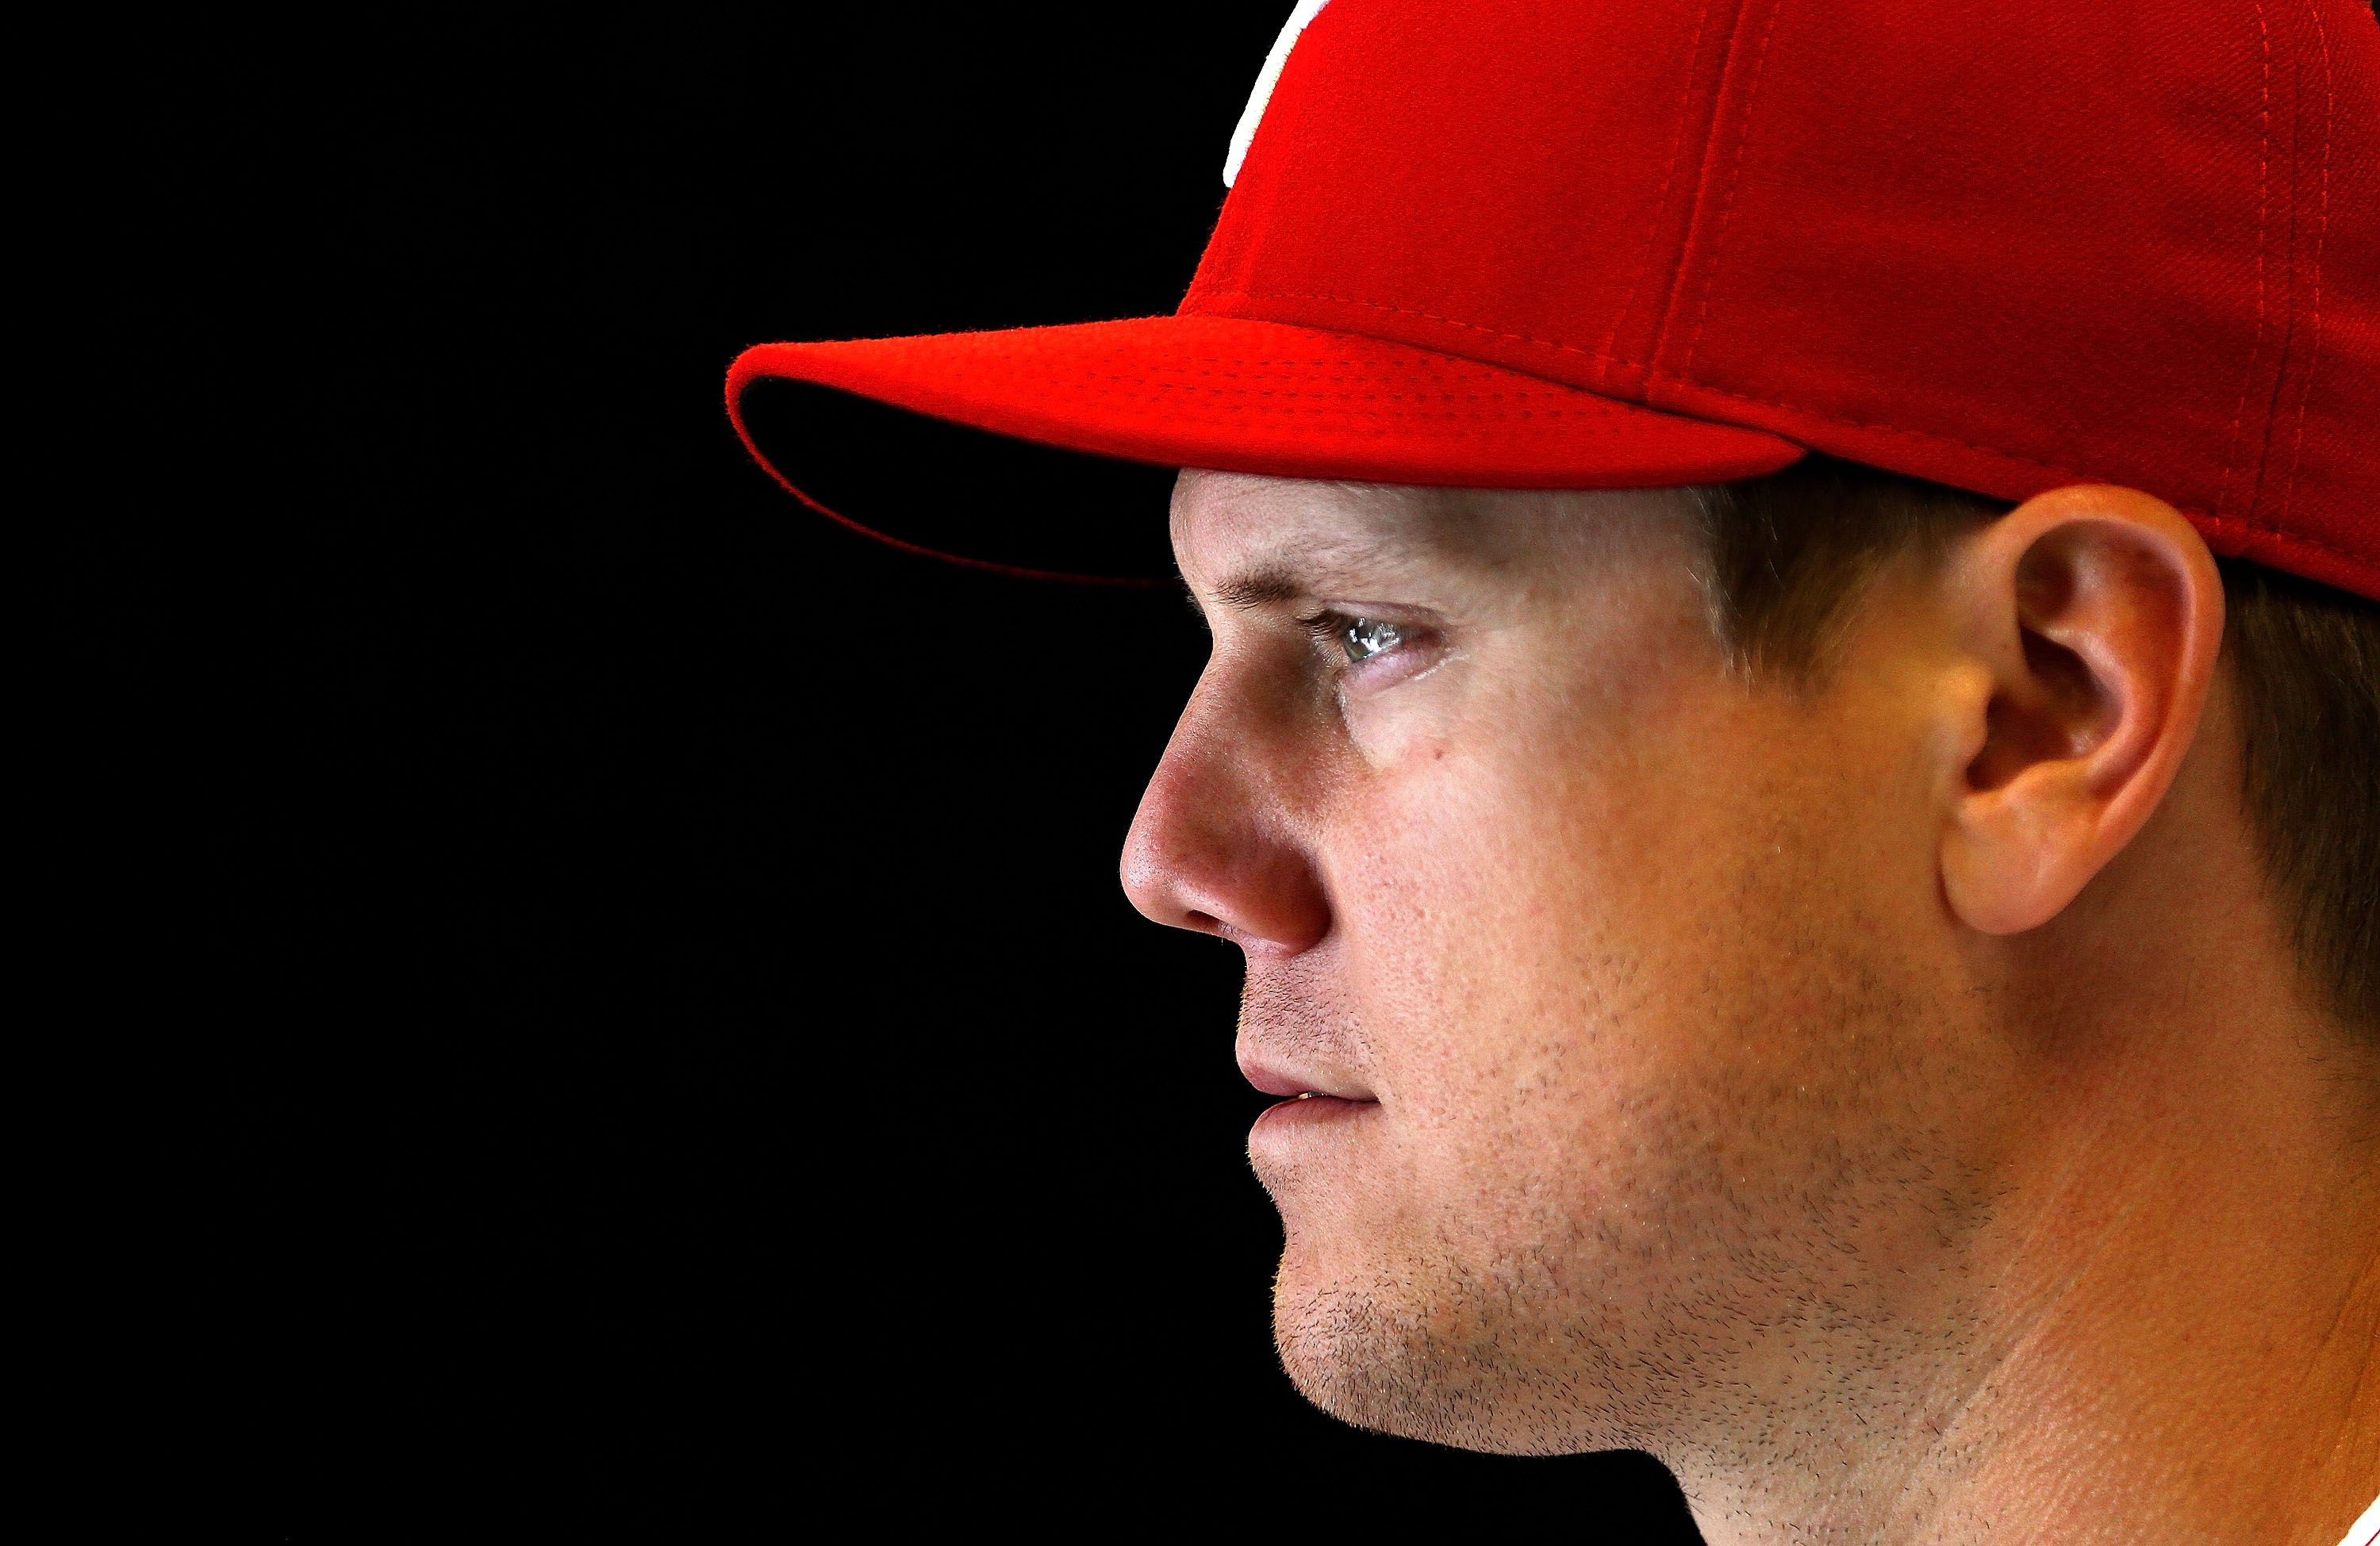 CLEARWATER, FL - FEBRUARY 27:  Jonathan Papelbon #58 of the Philadelphia Phillies poses for a portrait during photo day at Brighthouse Stadium on February 27, 2015 in Clearwater, Florida.  (Photo by Mike Ehrmann/Getty Images)